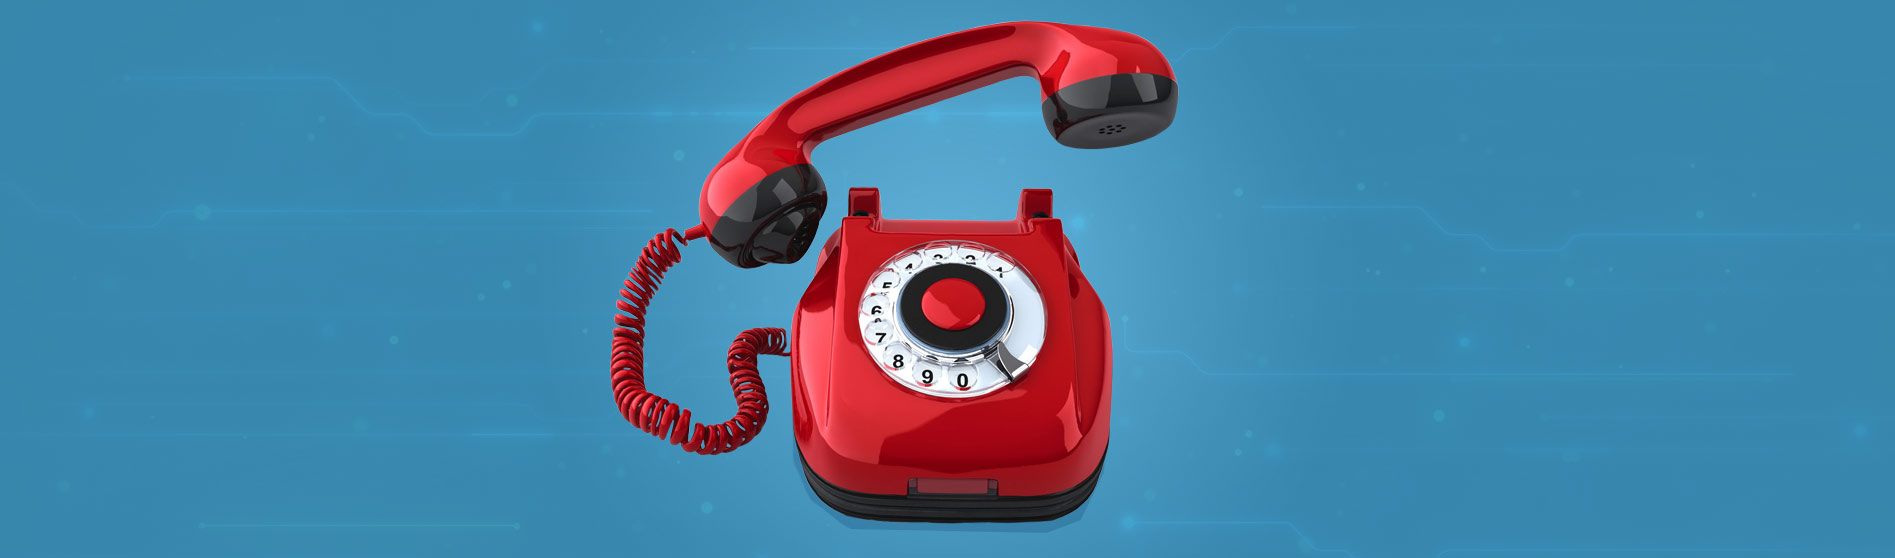 Landline phone can still evolve